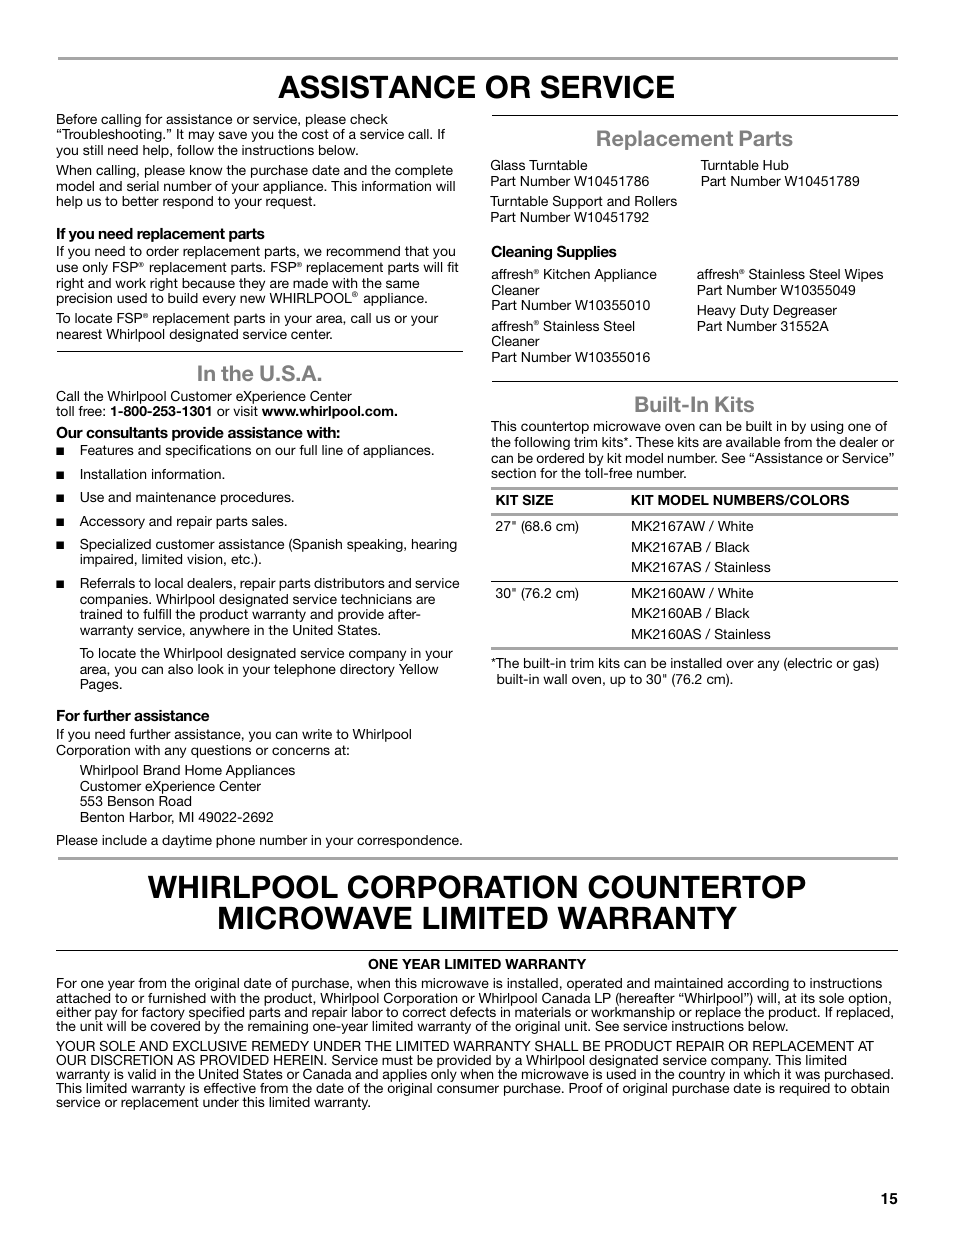 whirlpool wmc30516as user manual 2 pages